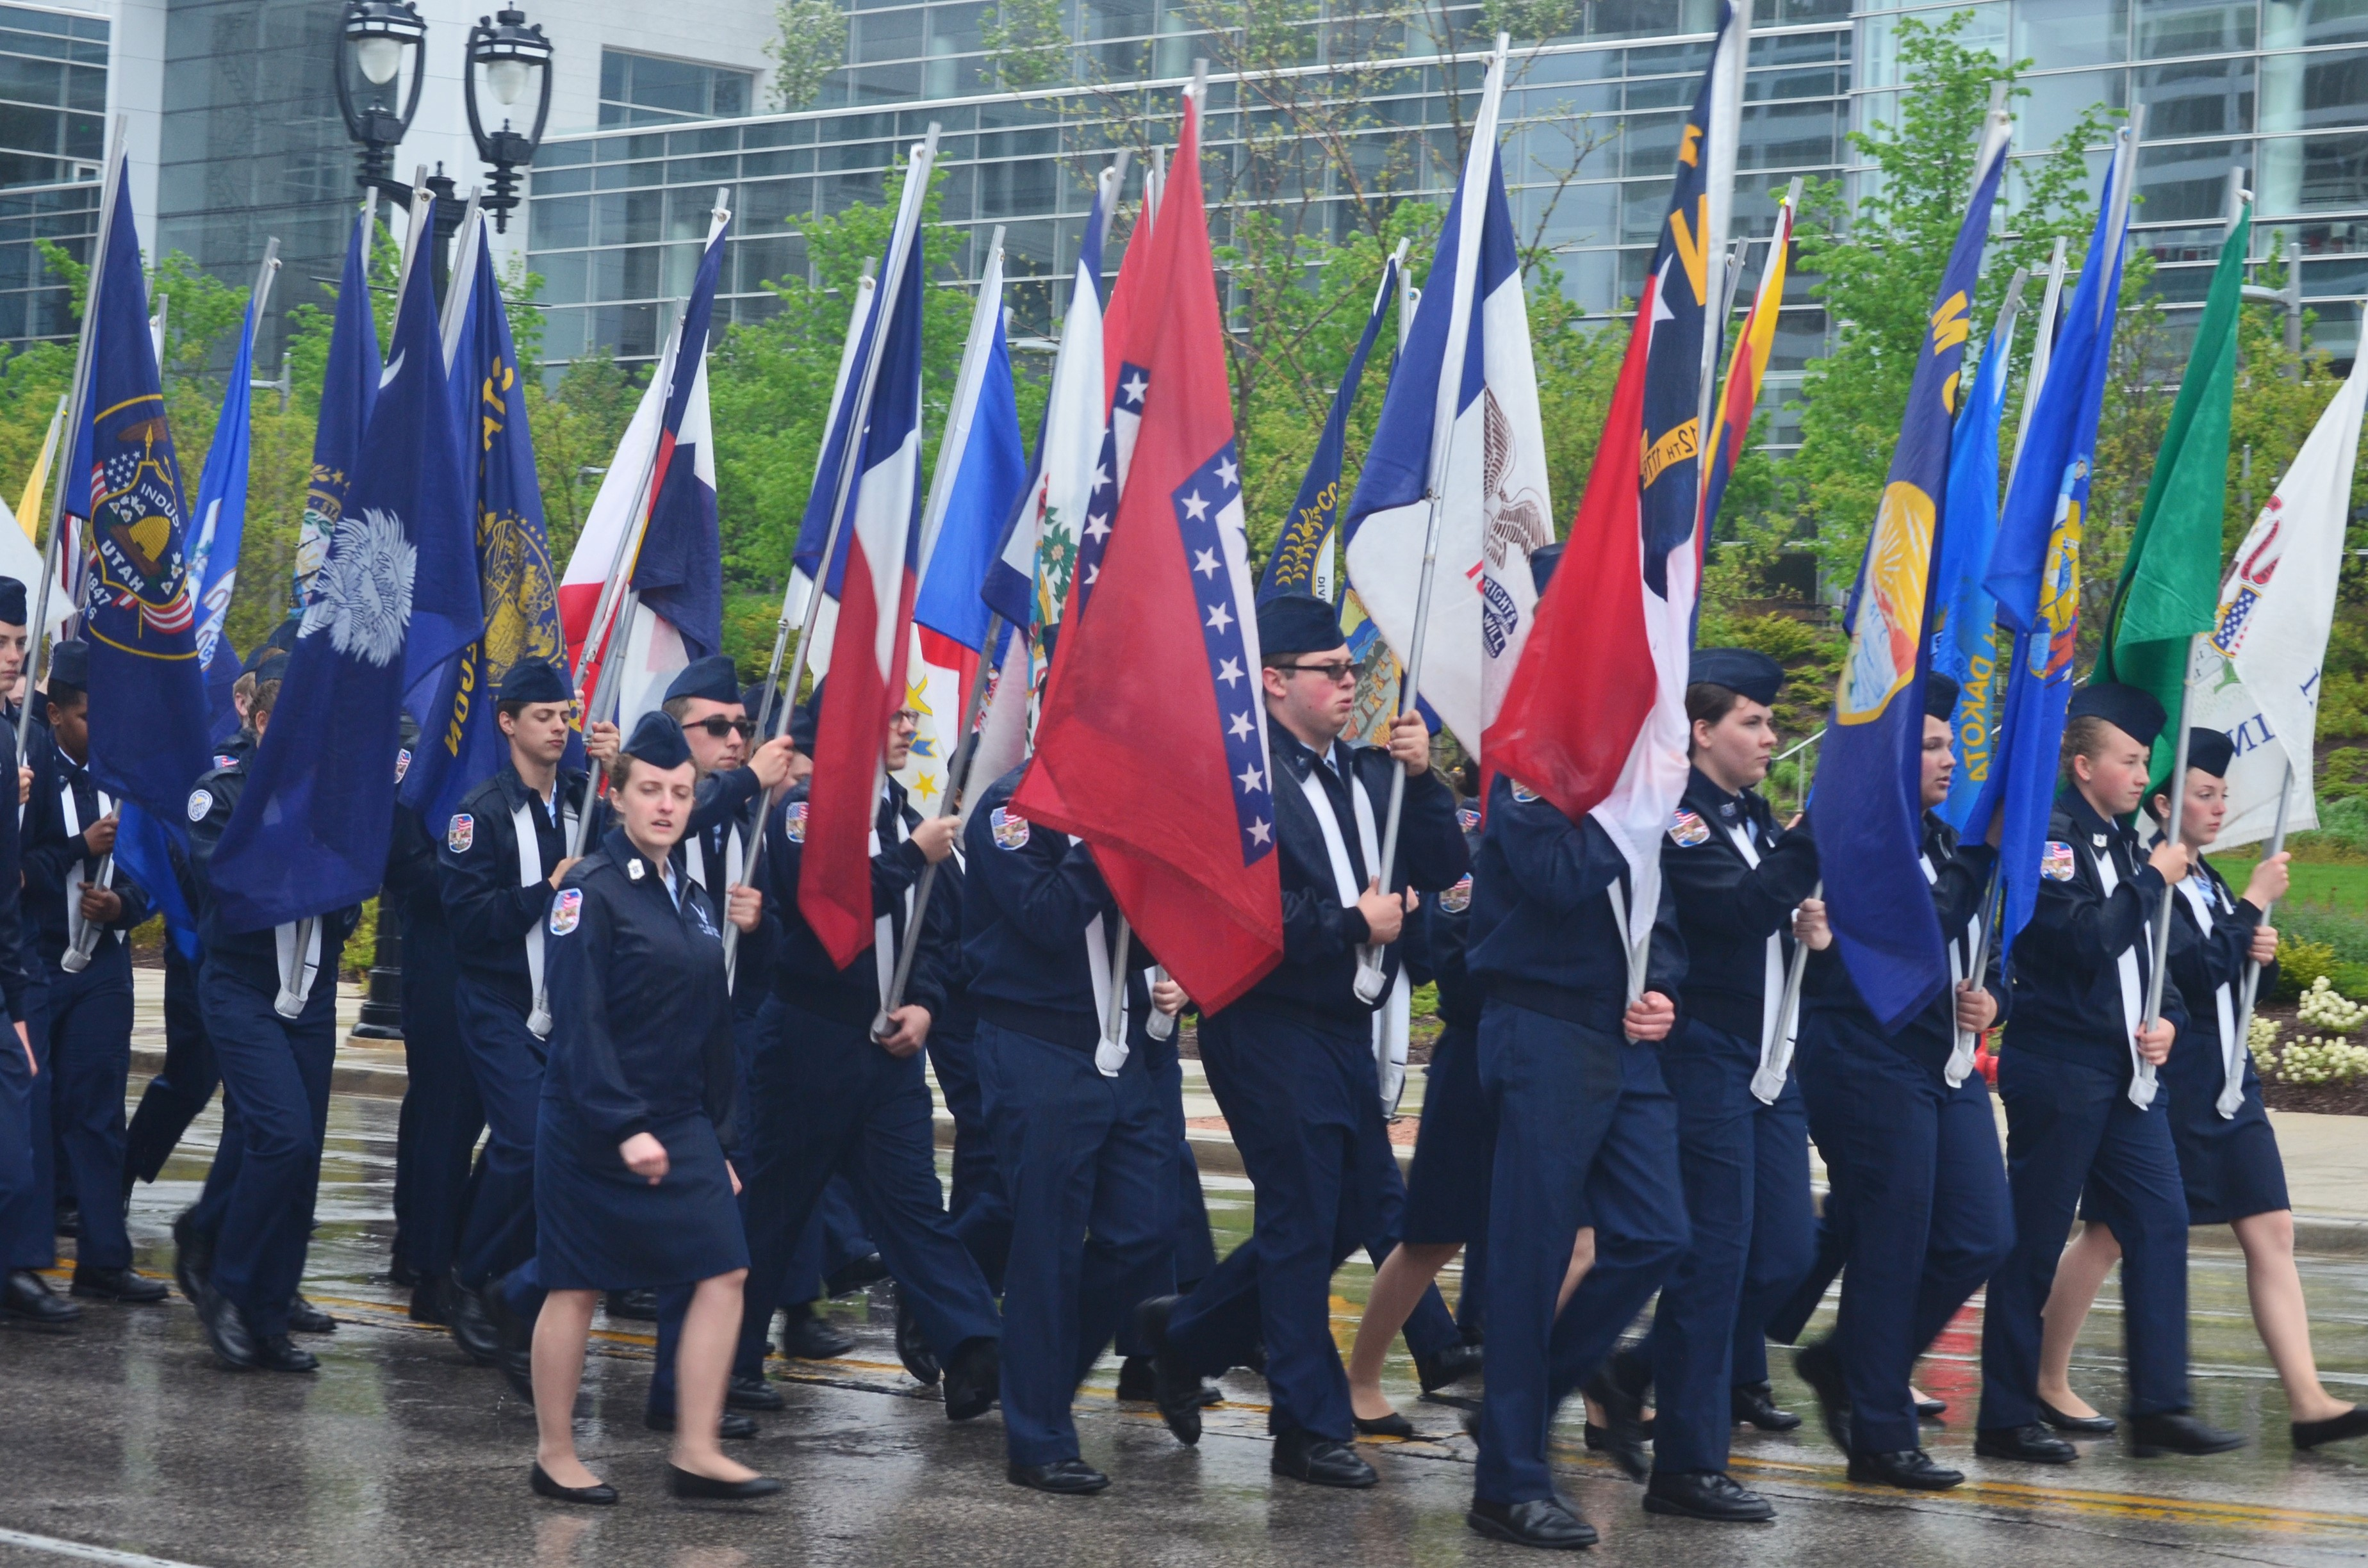 Air Force Junior ROTC members from Greenfield High School. Photo by Jack Fennimore.